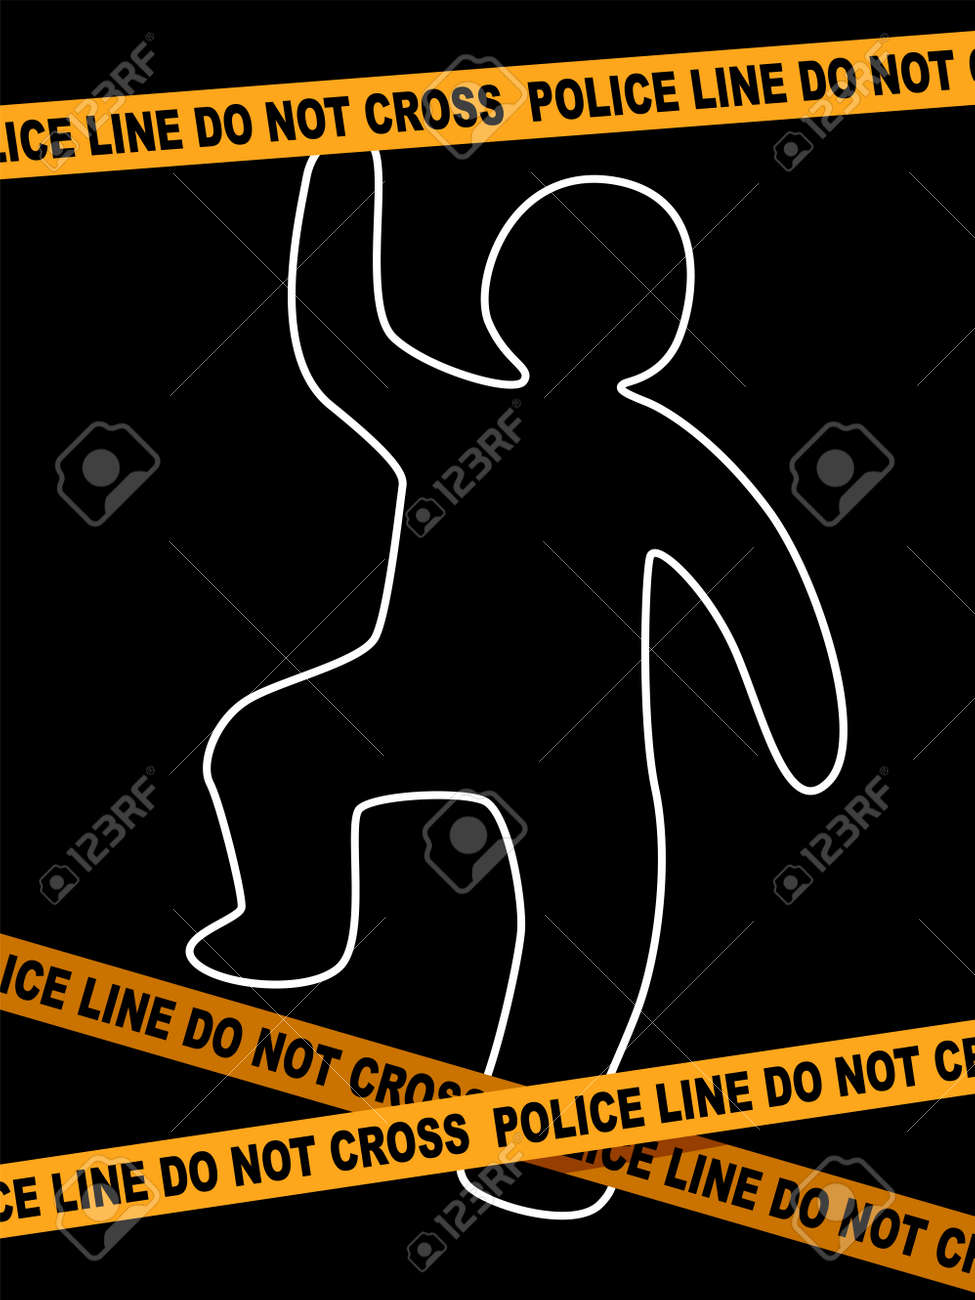 A Vector Illustration of Police Line Crime Scene with dead Body Trace. - 80540934